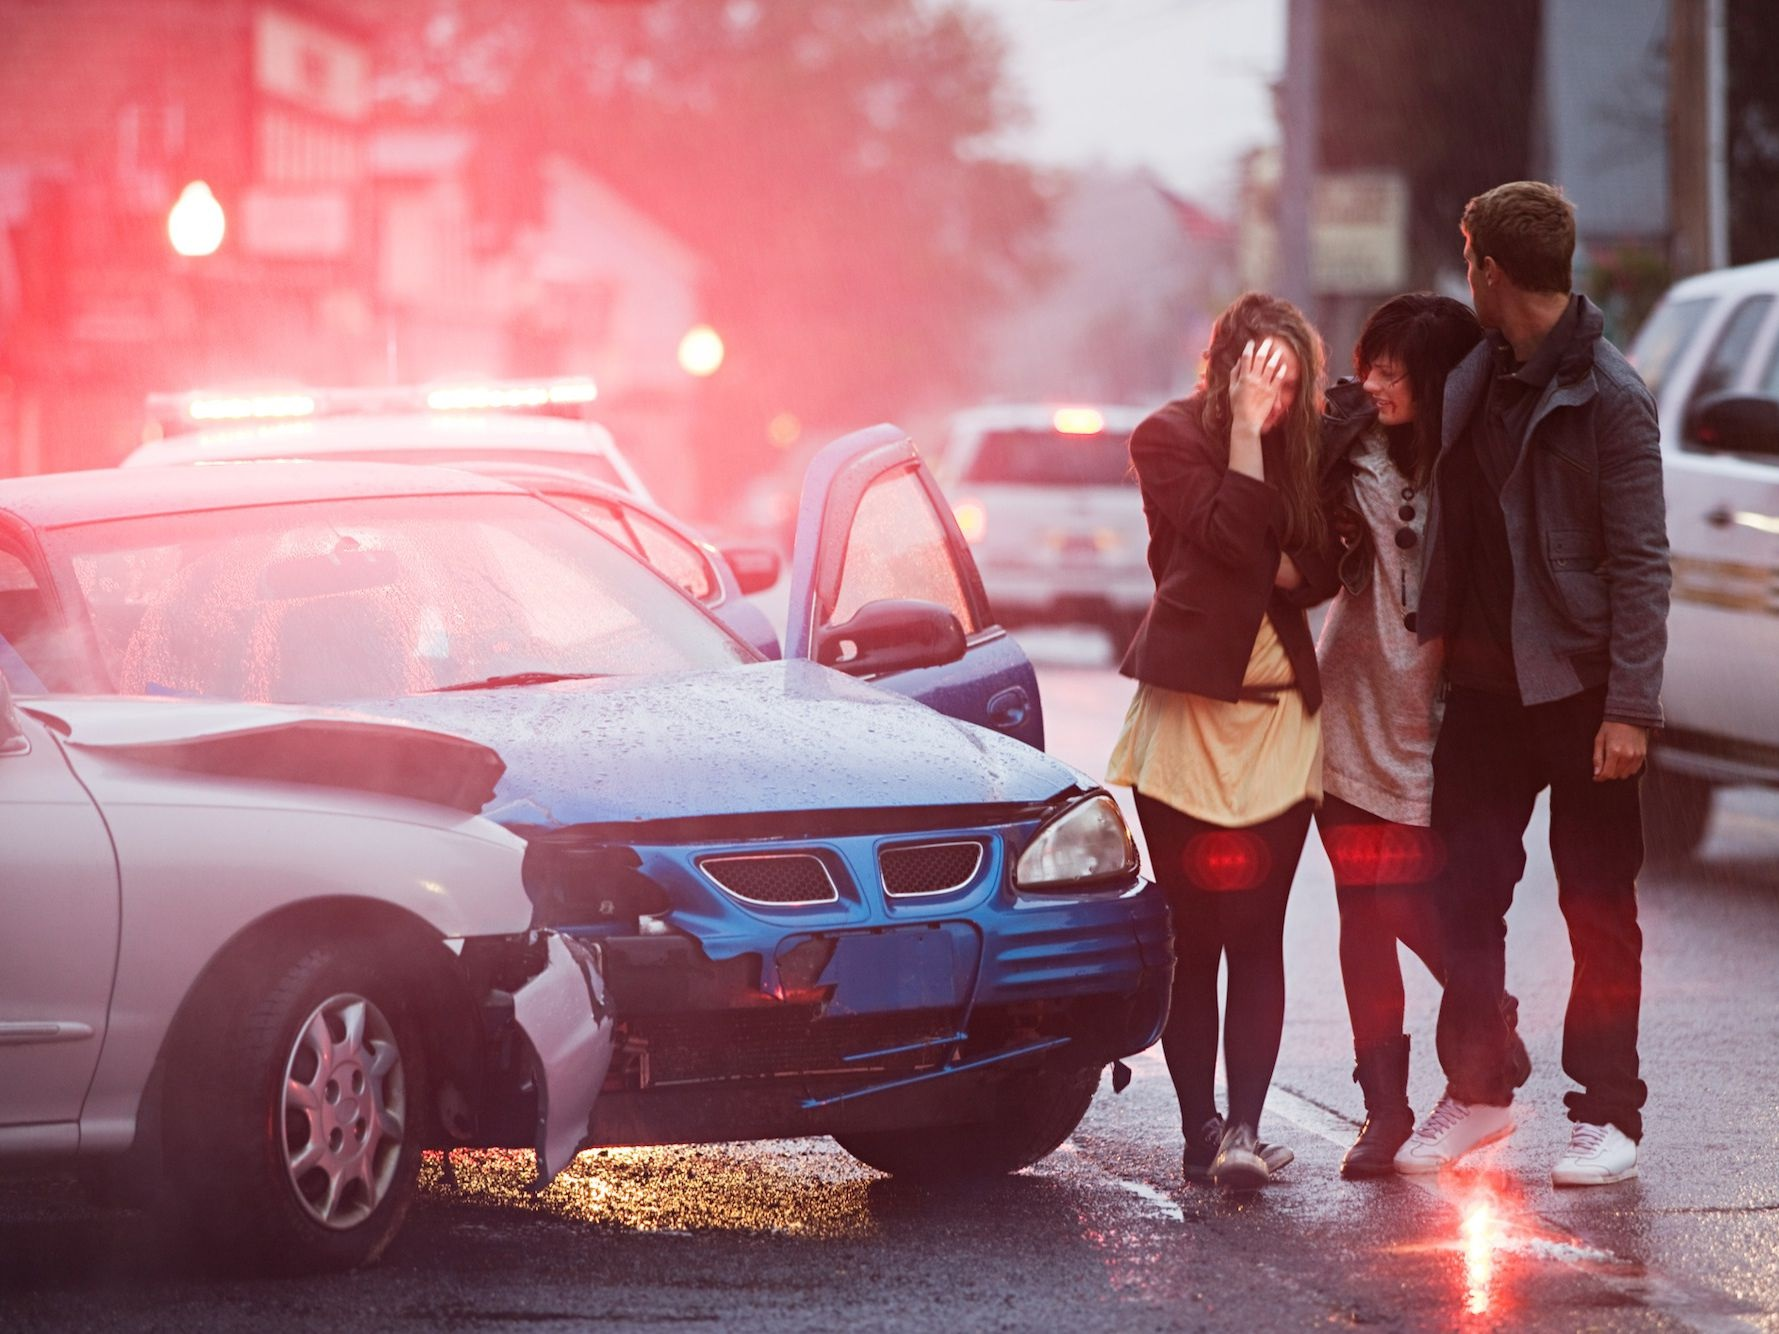 Coping With PTSD Following a Traffic Accident